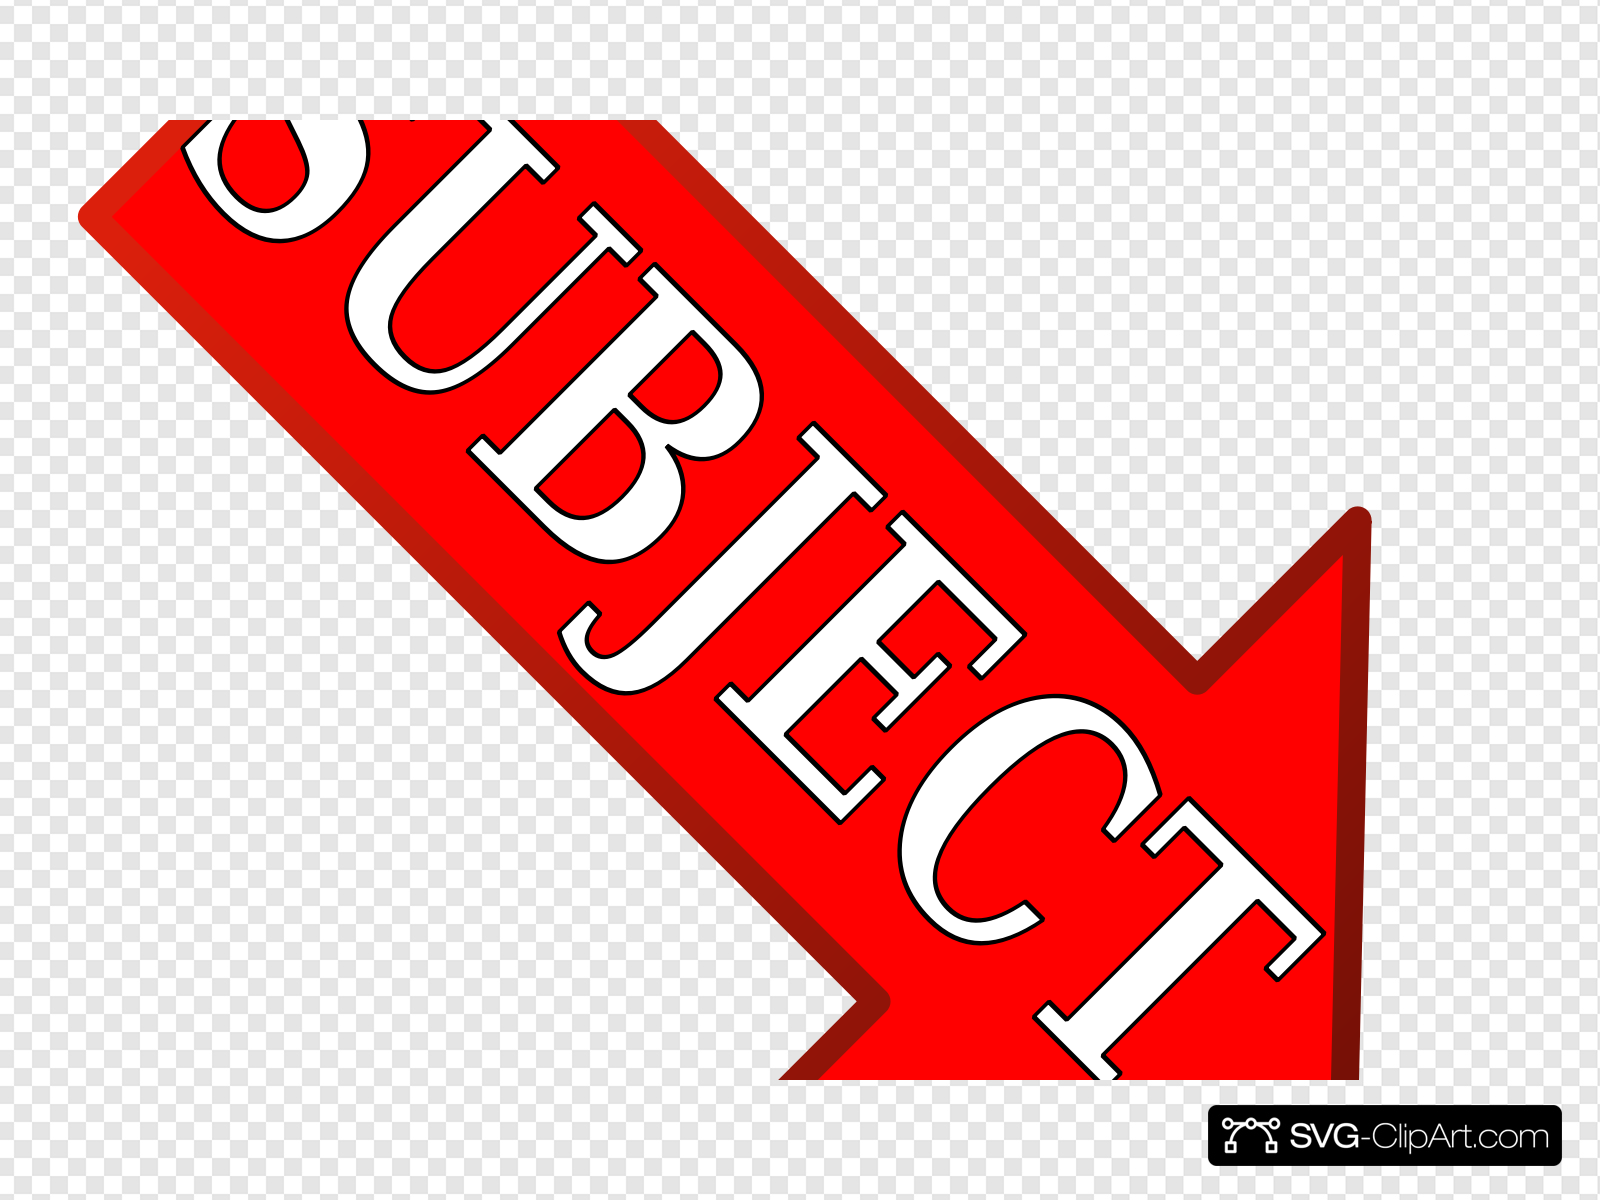 Red Subject Arrow Down Right Clip art, Icon and SVG.